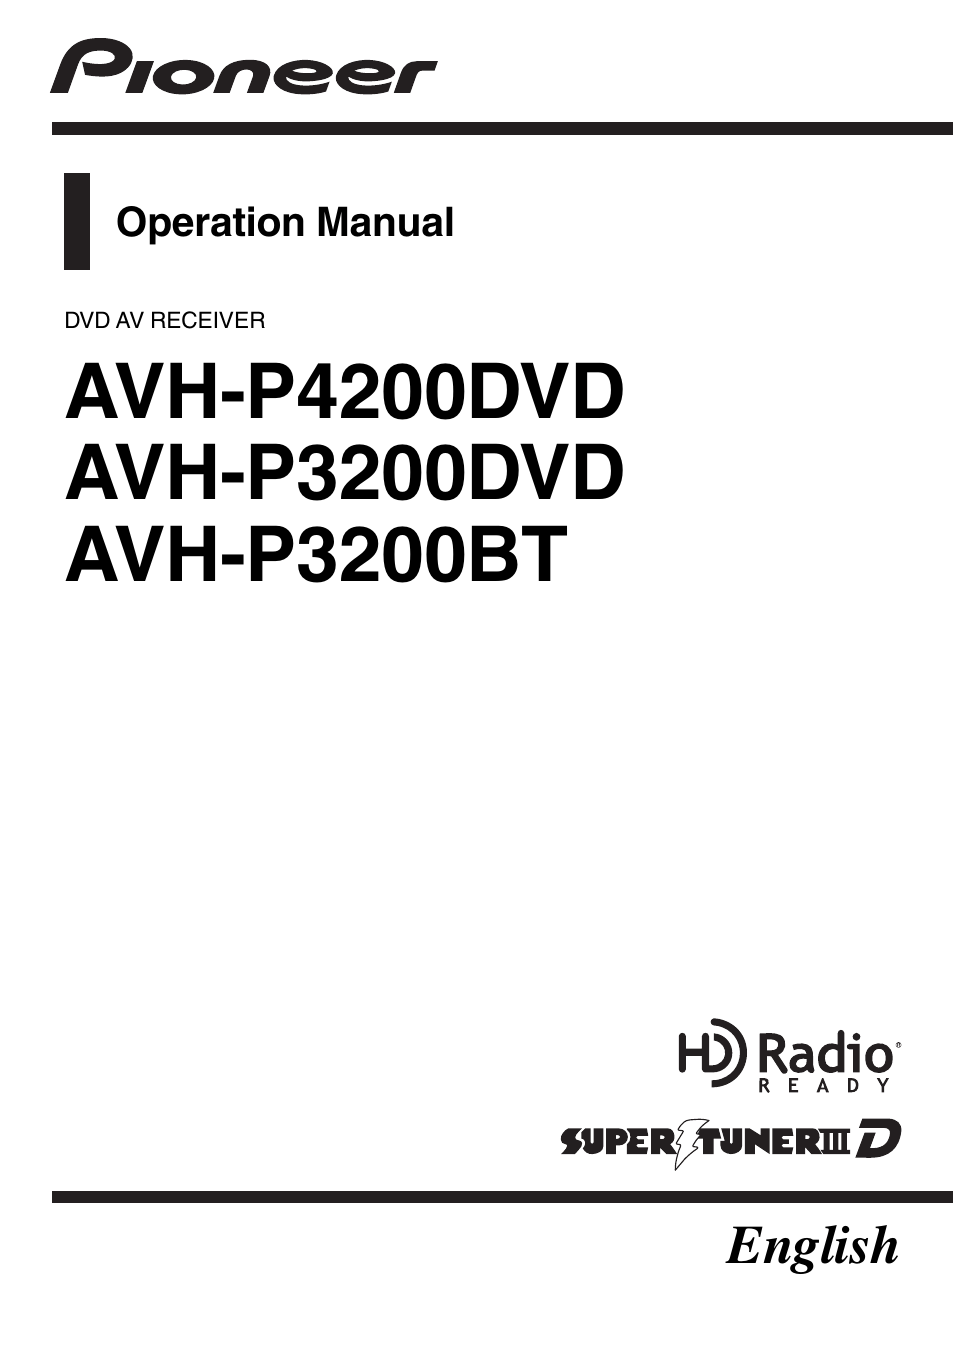 Cradlepoint Wiring Diagram 26 Images Pioneer Avh P3200dvd Of P3200bt Page1resize